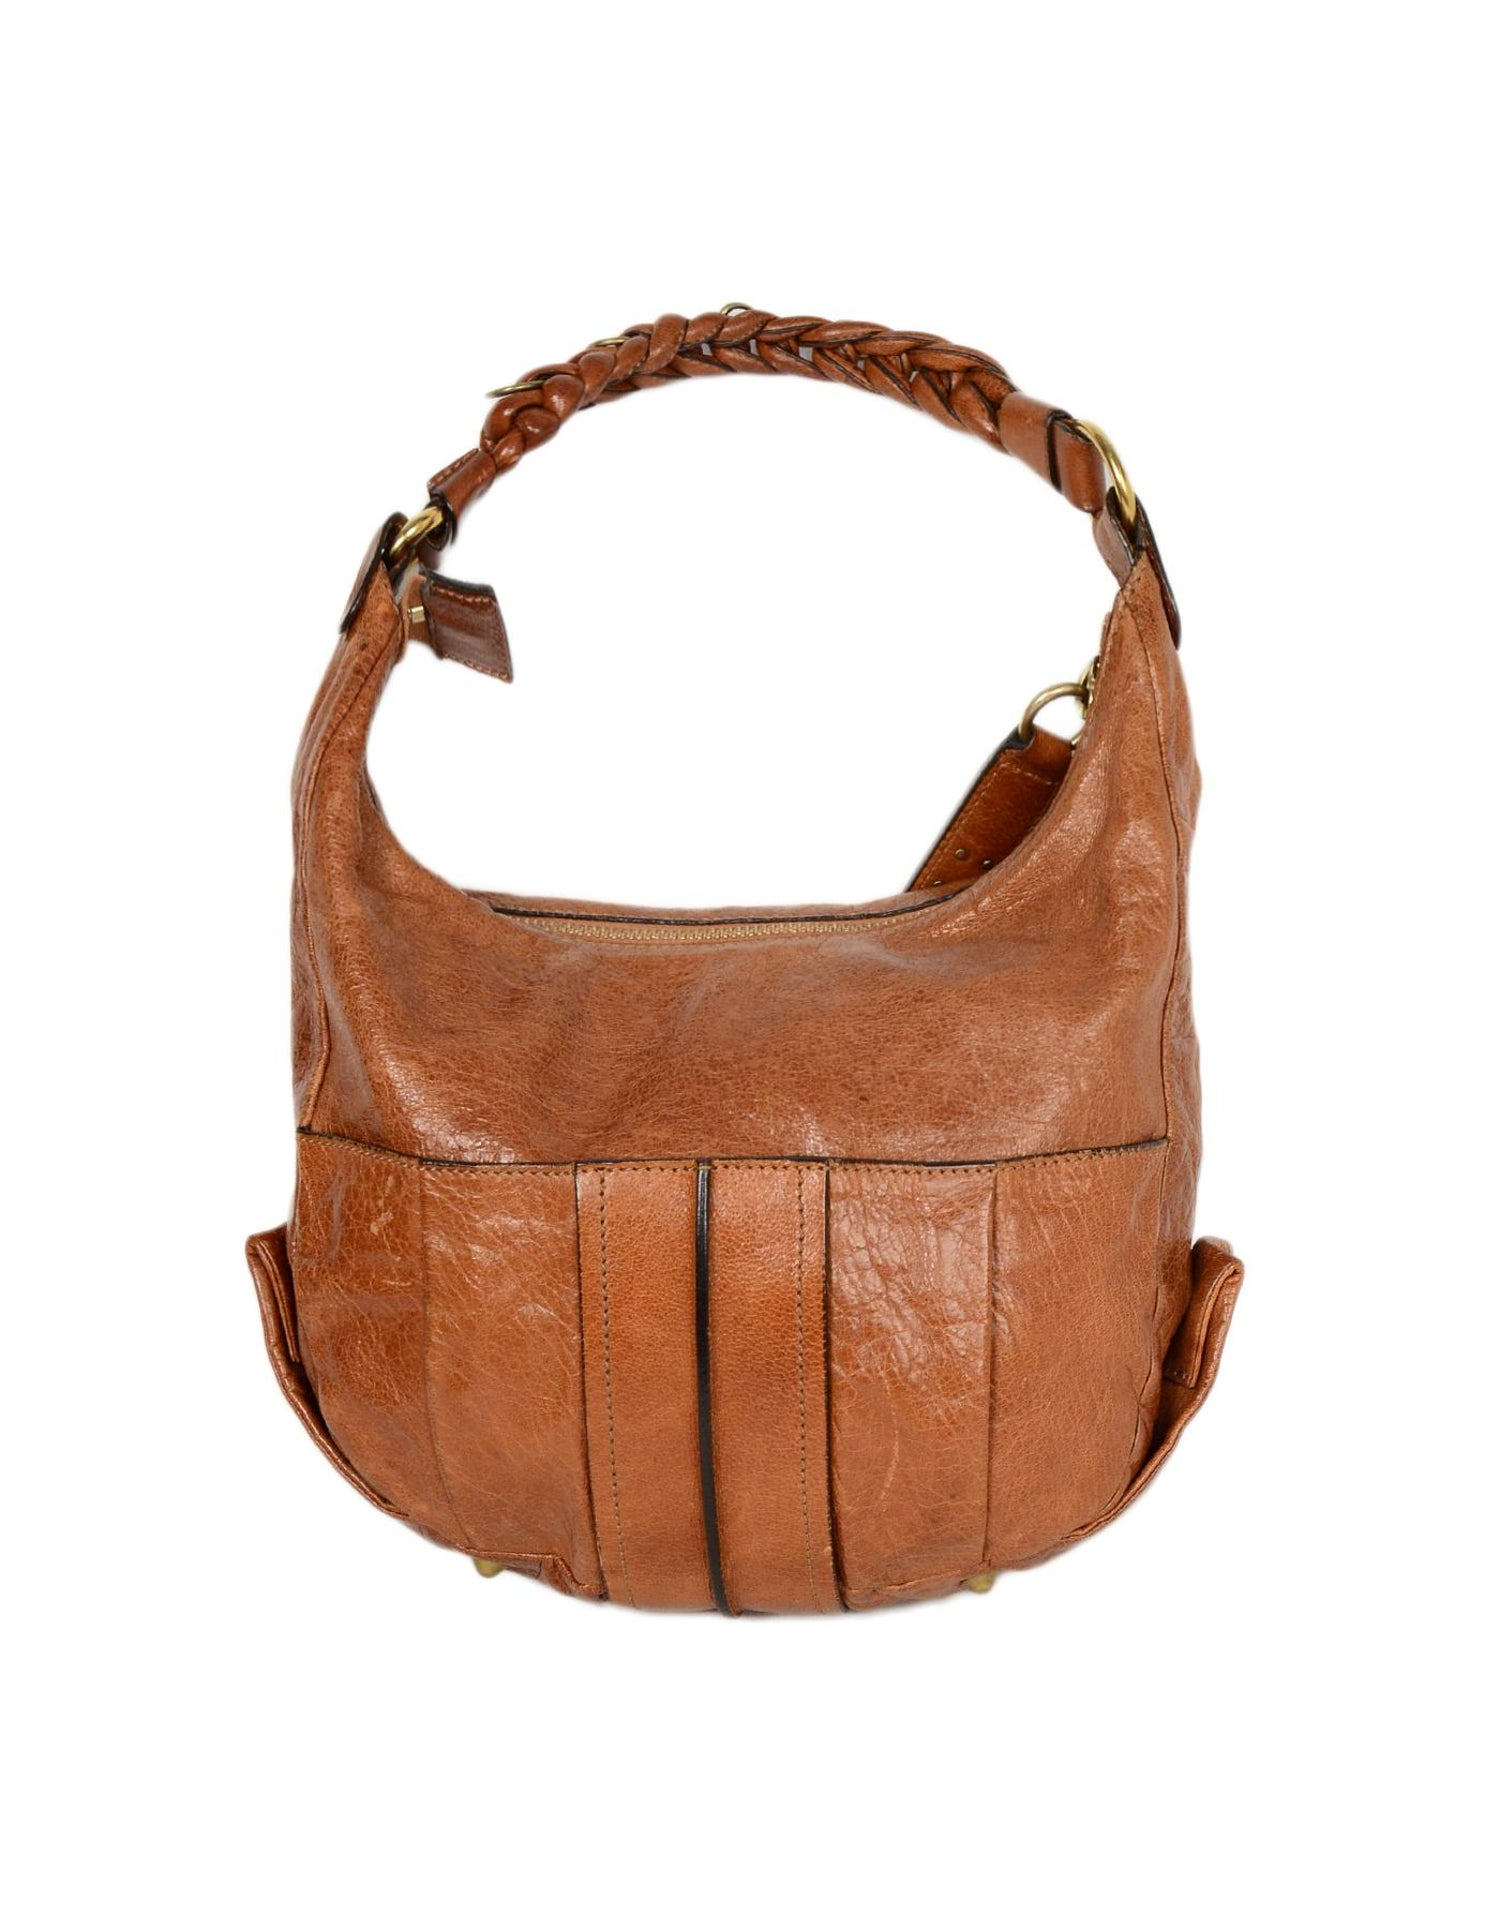 9d5eb0841d852 Chloe Tan Leather Heloise Hobo Bag w/ Braided Shoulder Strap For Sale at  1stdibs